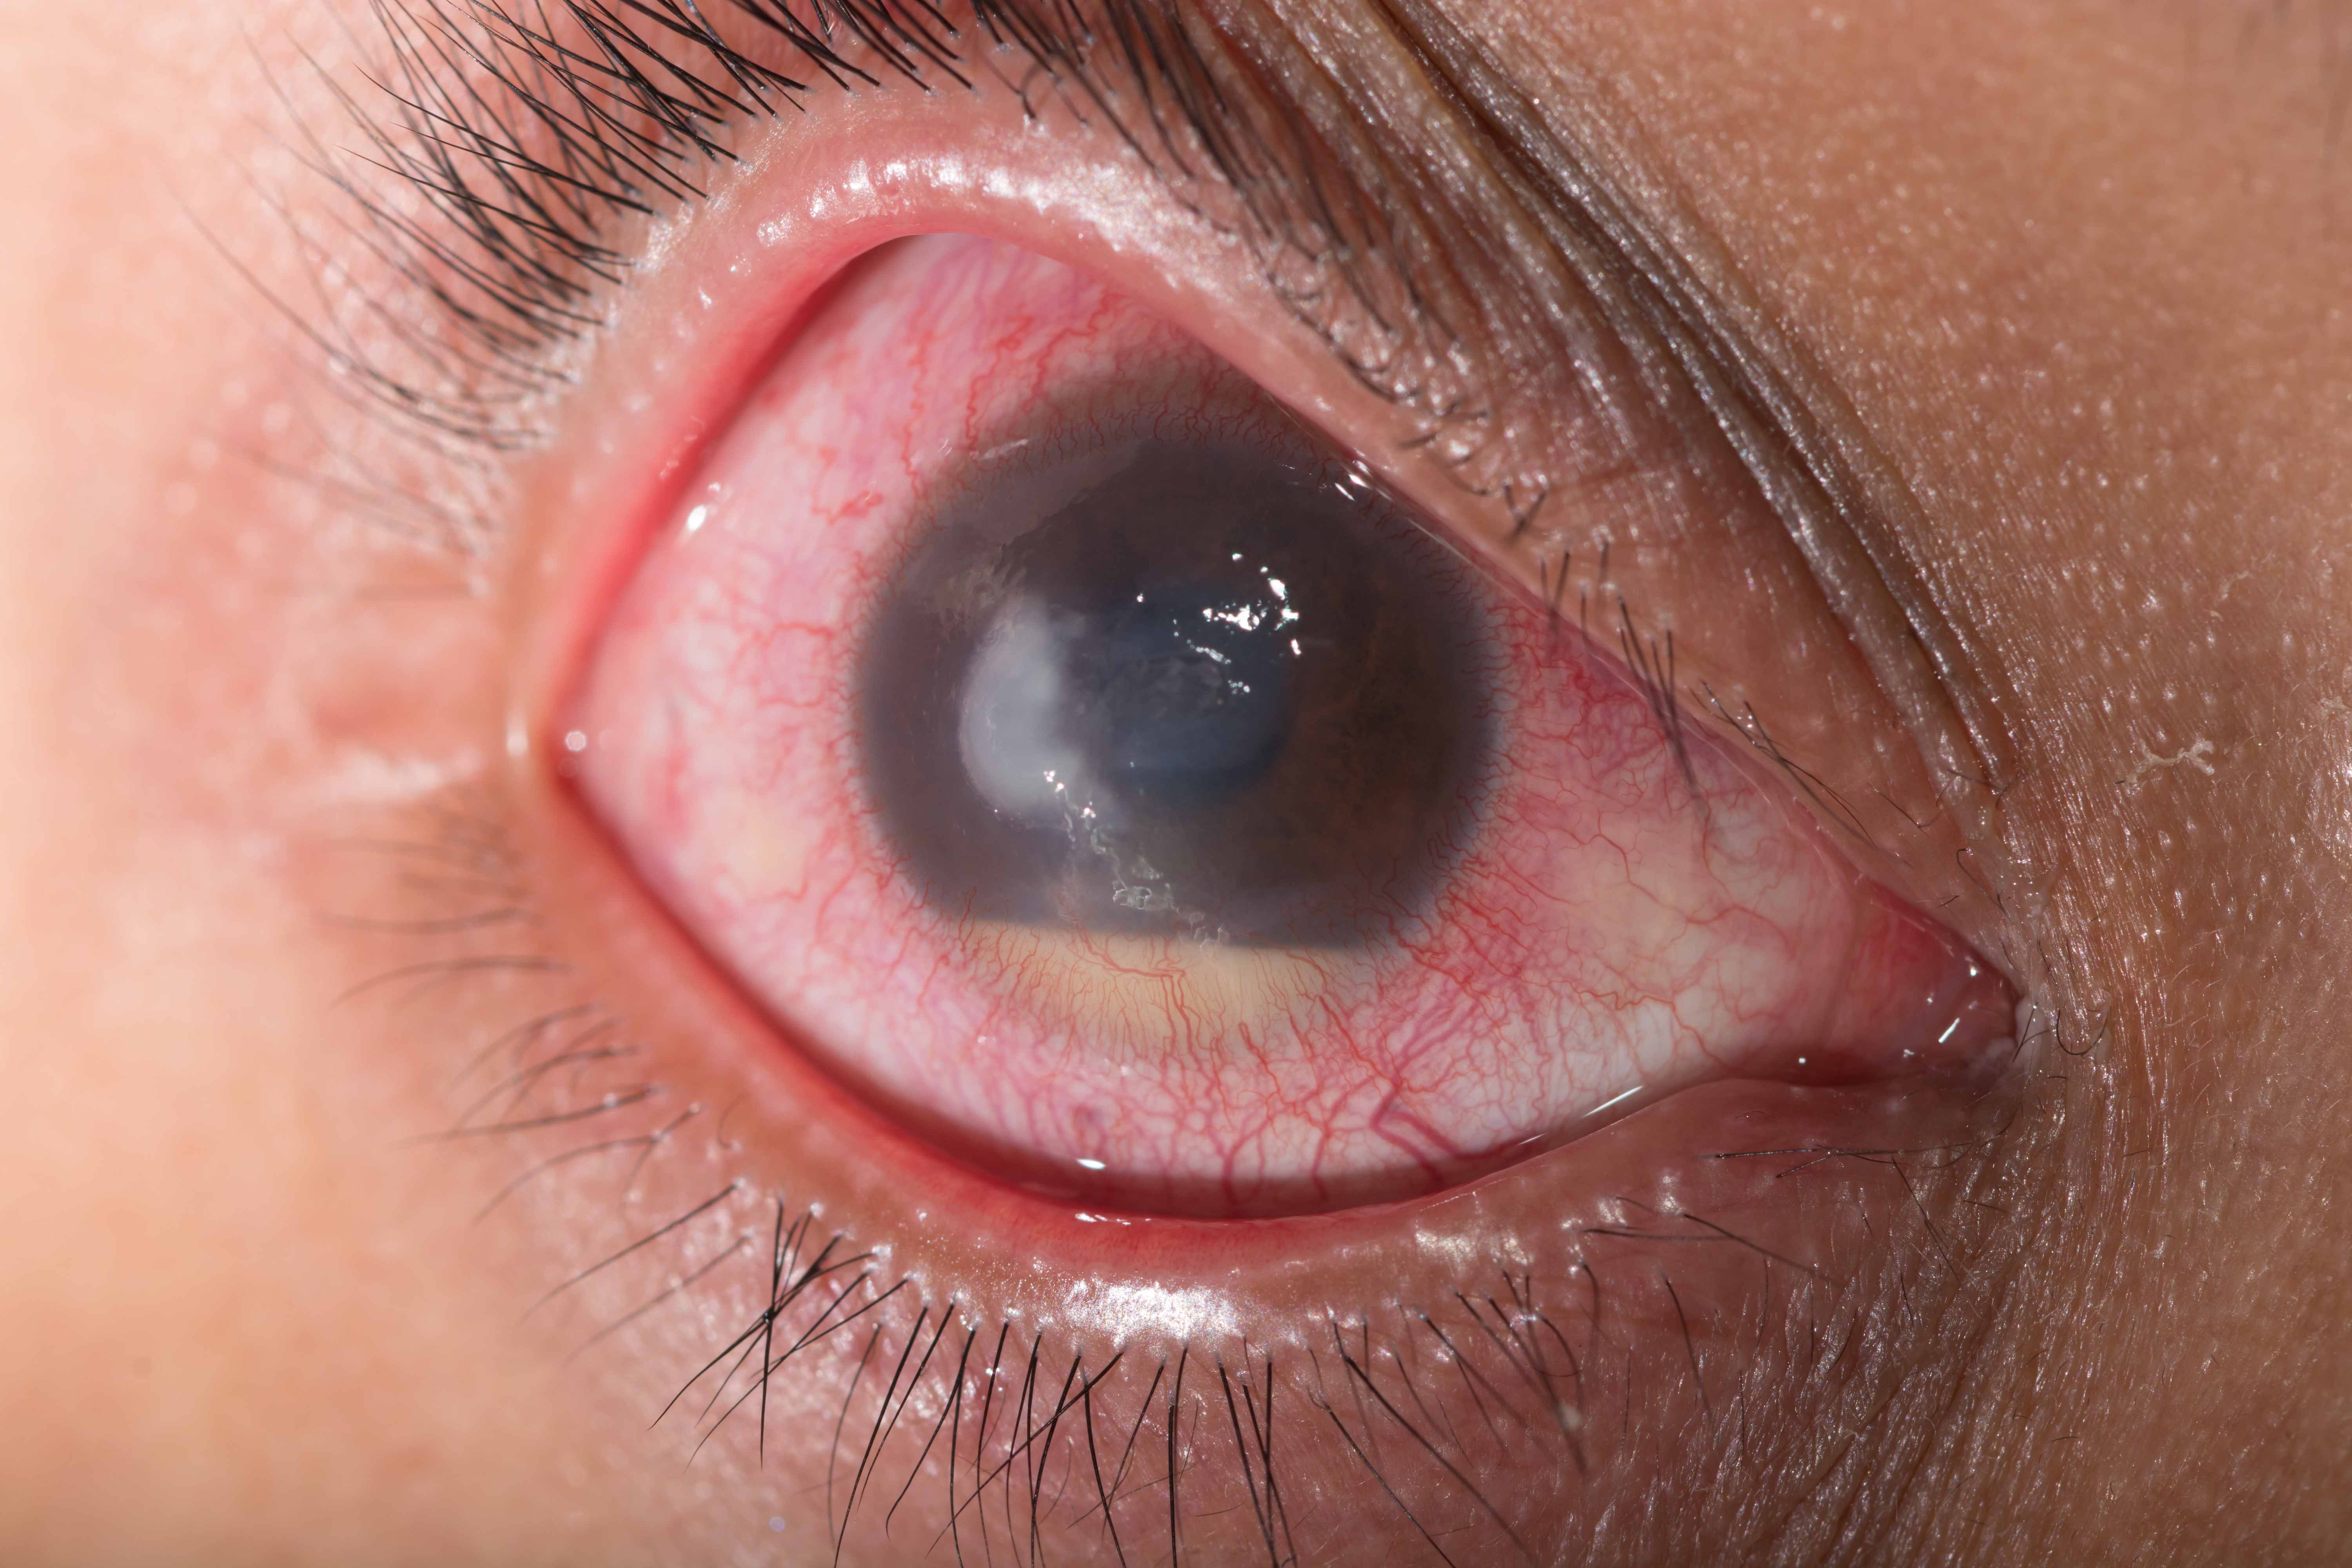 glaucoma relief new wave of drugs poised to shake up glaucoma treatment